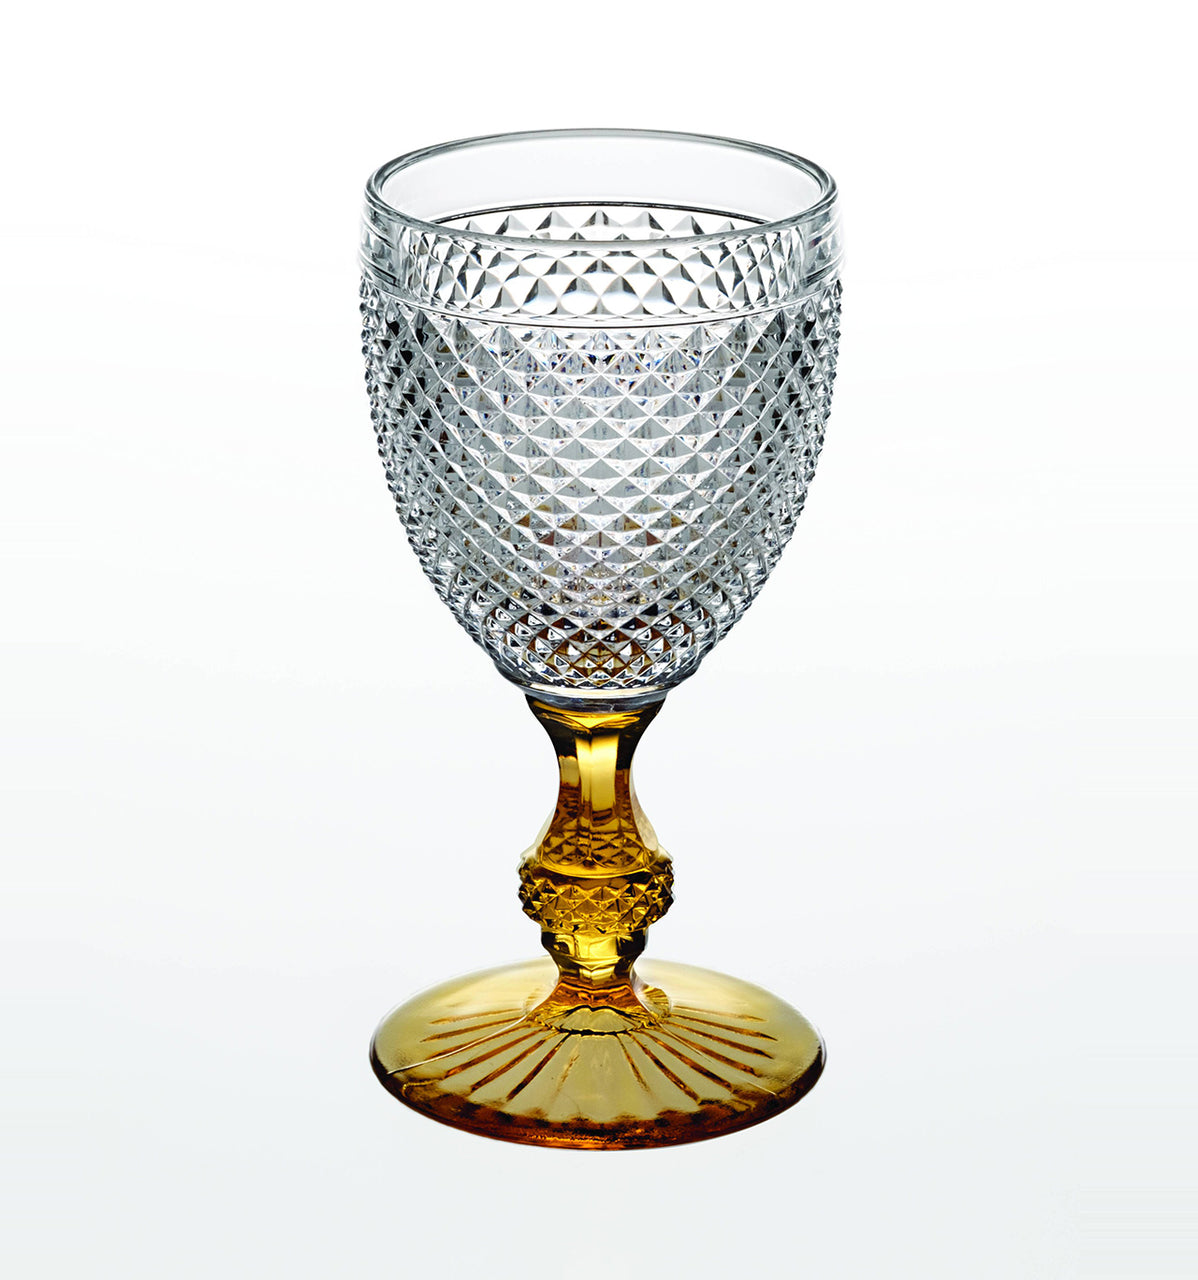 Bicos Goblet Collection (Available In 3 Colors)